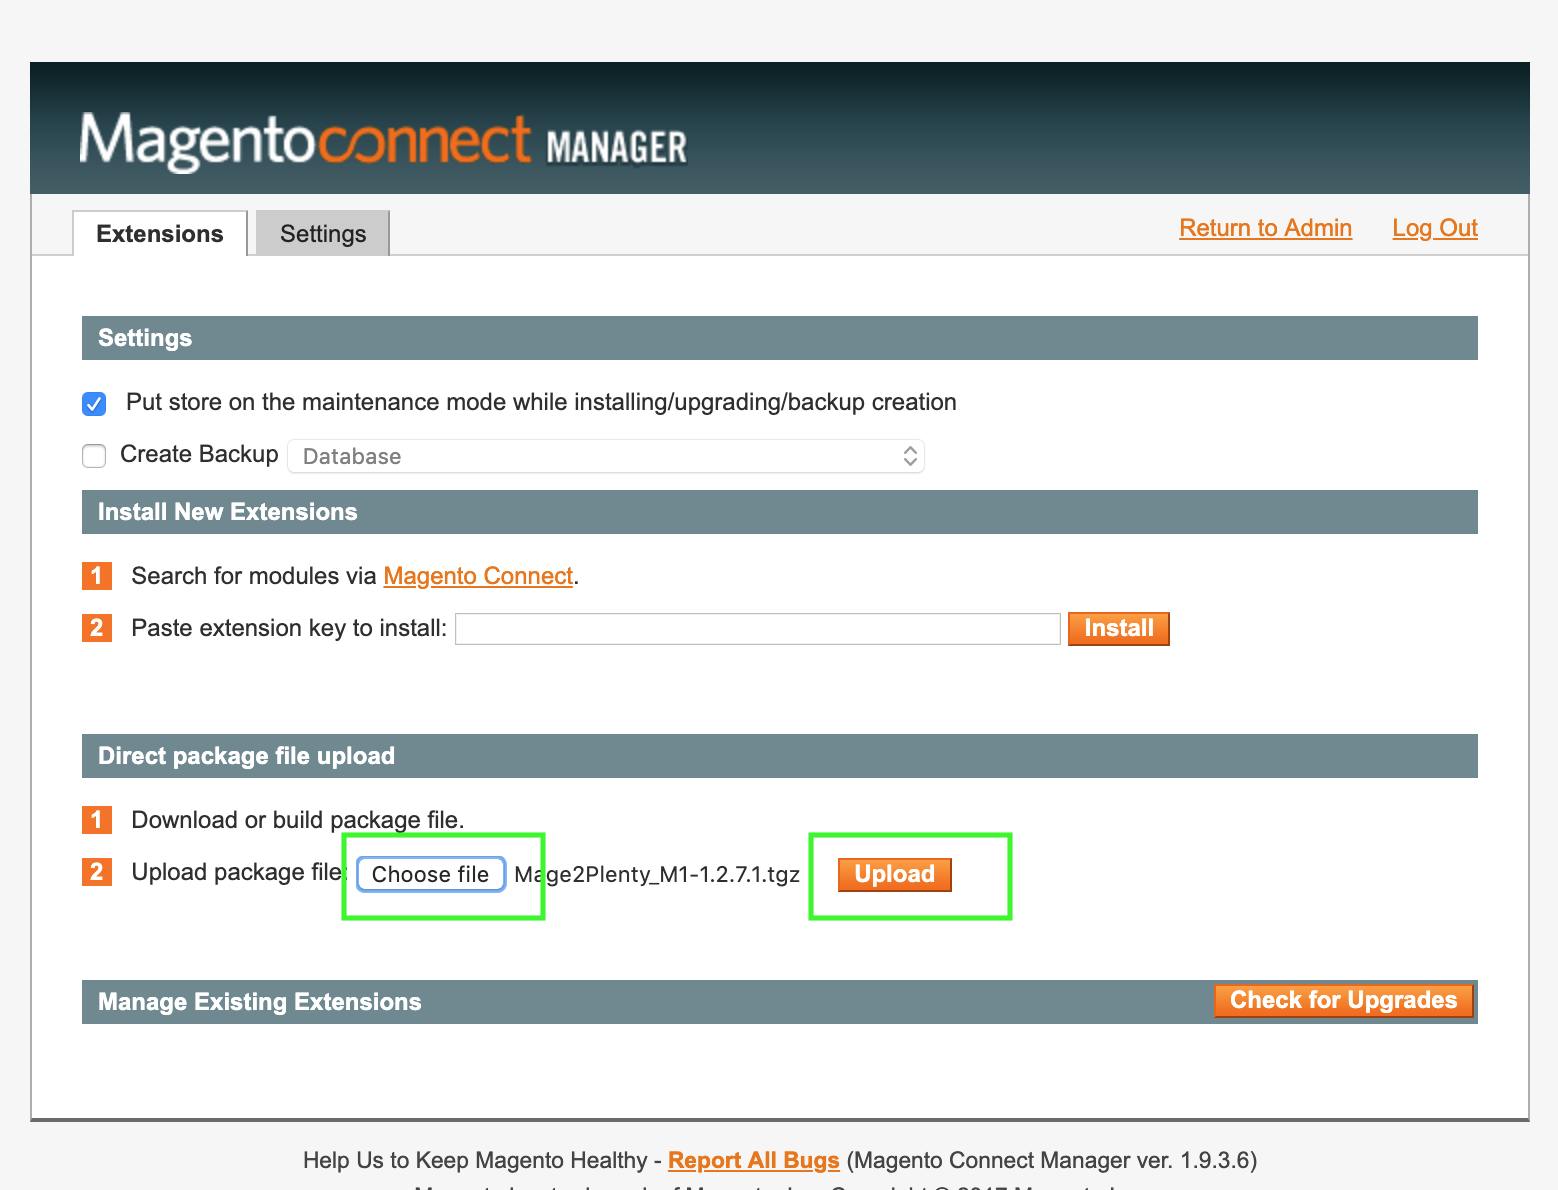 Magento 1 extension installation - connect manager